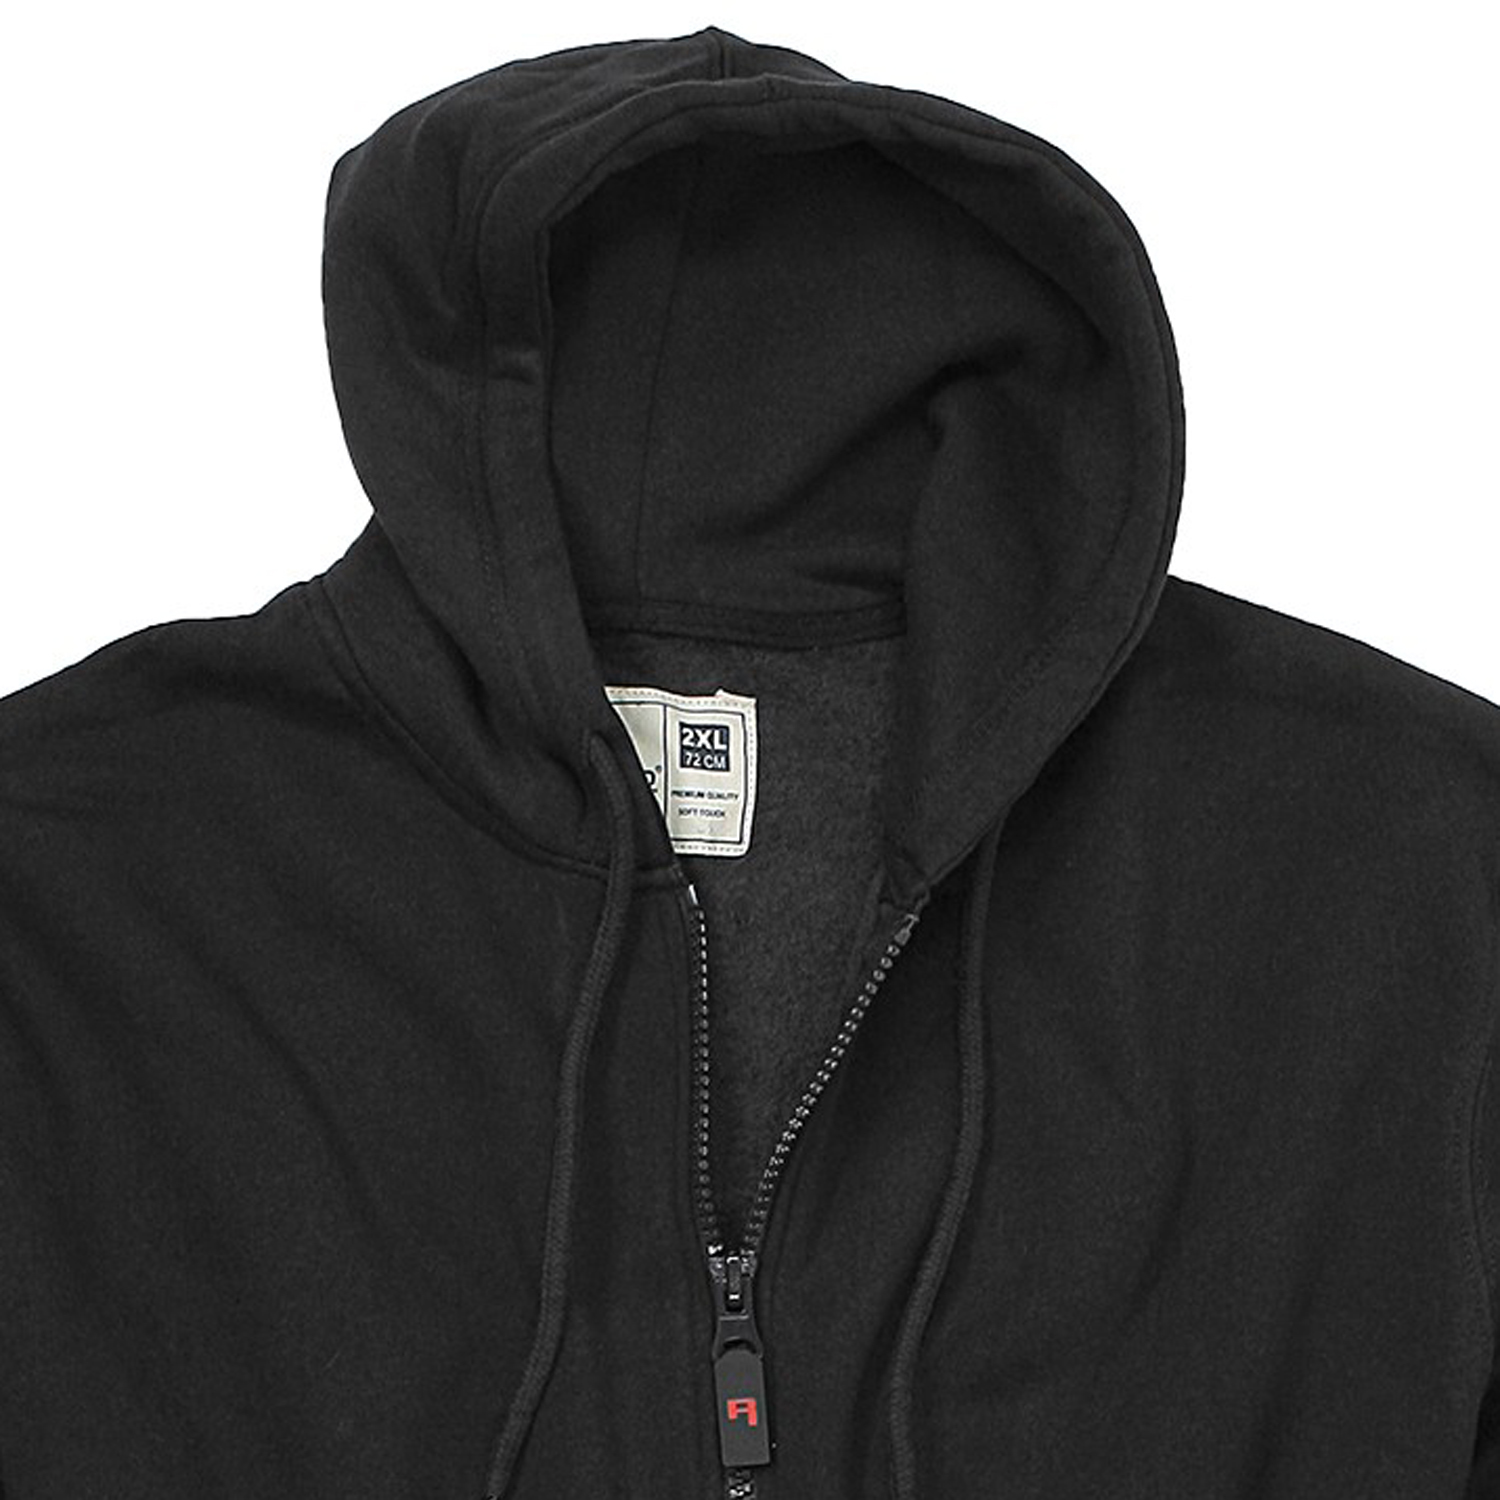 Detail Image to Hoody jacket model CANTOR in black from Rockford in king sizes up to 8XL